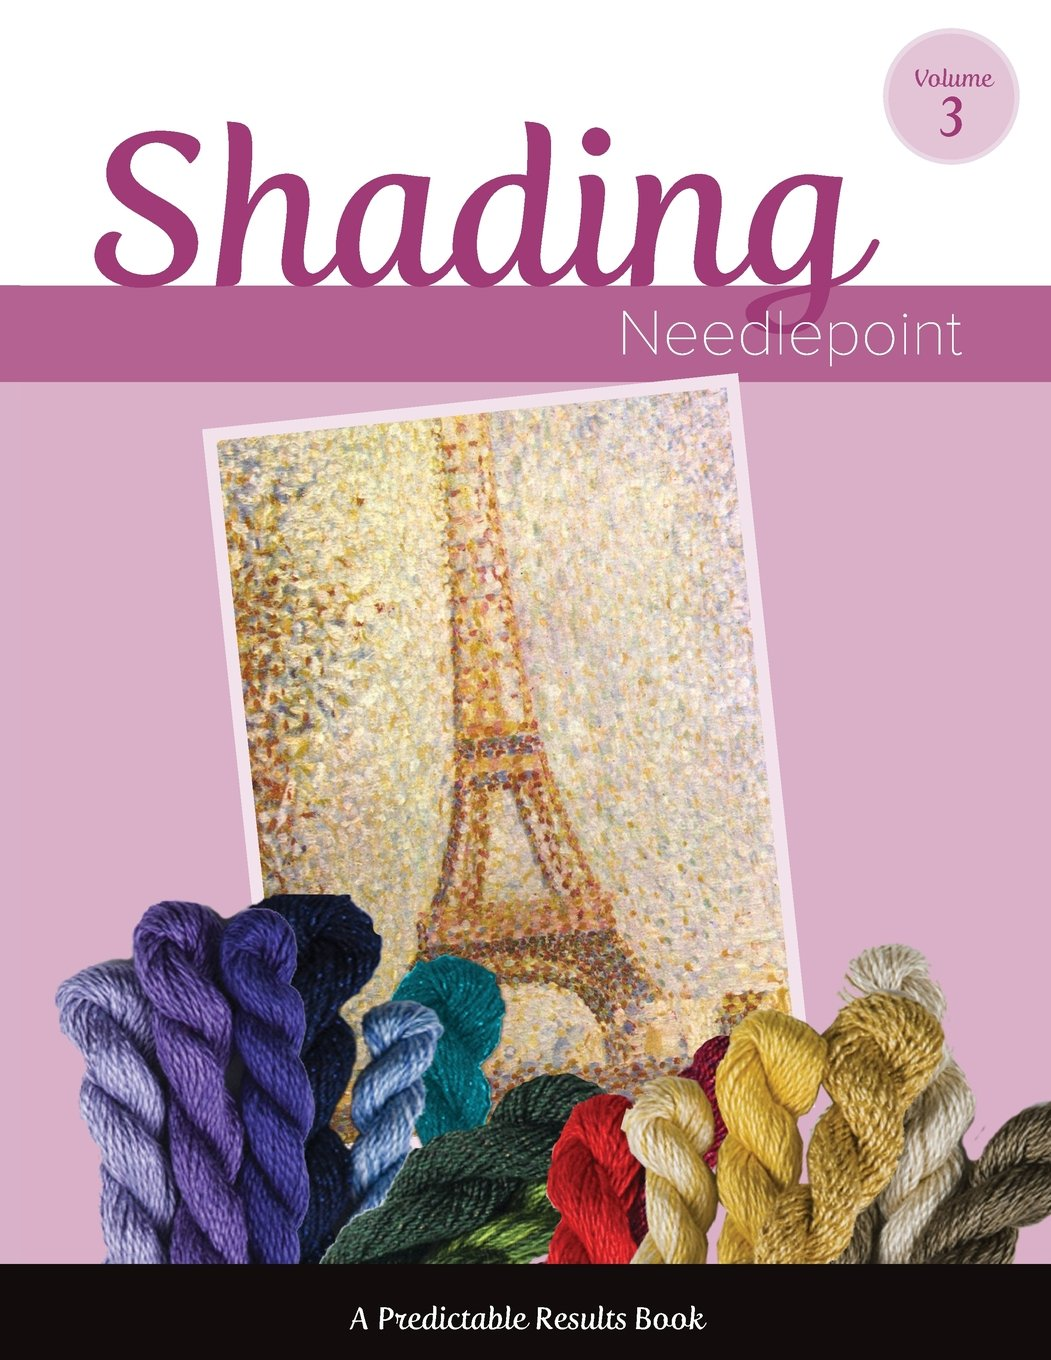 Shading Needlepoint Predictable Results 3 product image